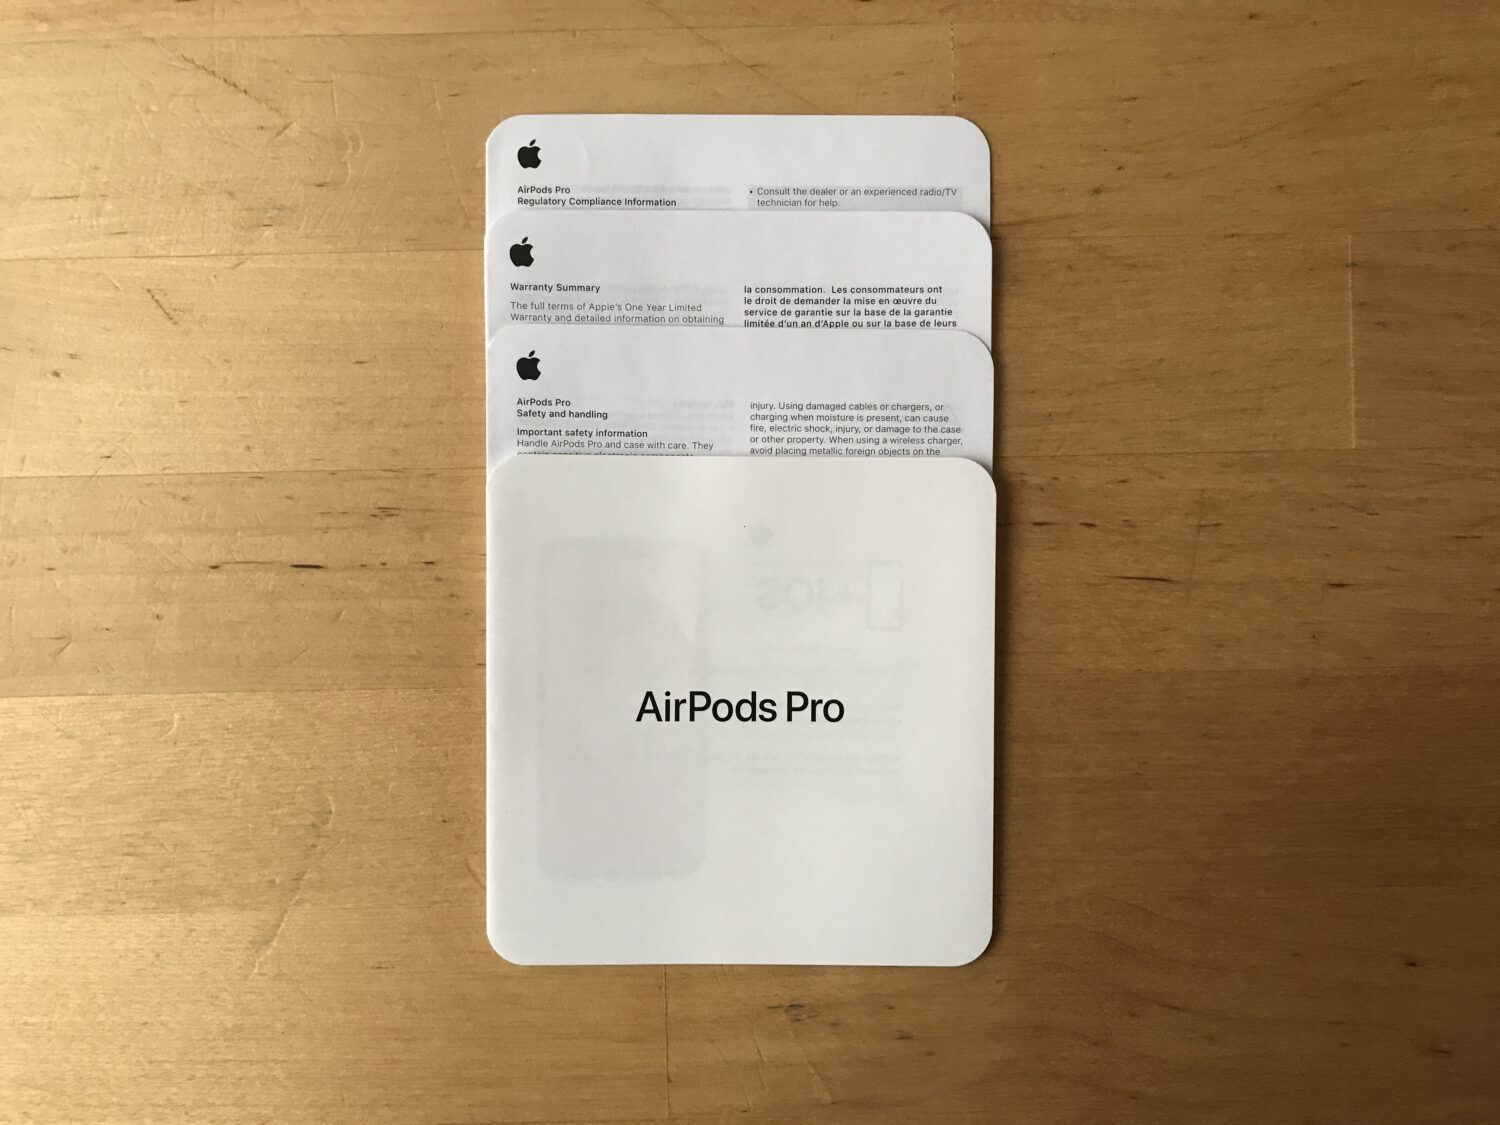 Documentation Airpods Pro